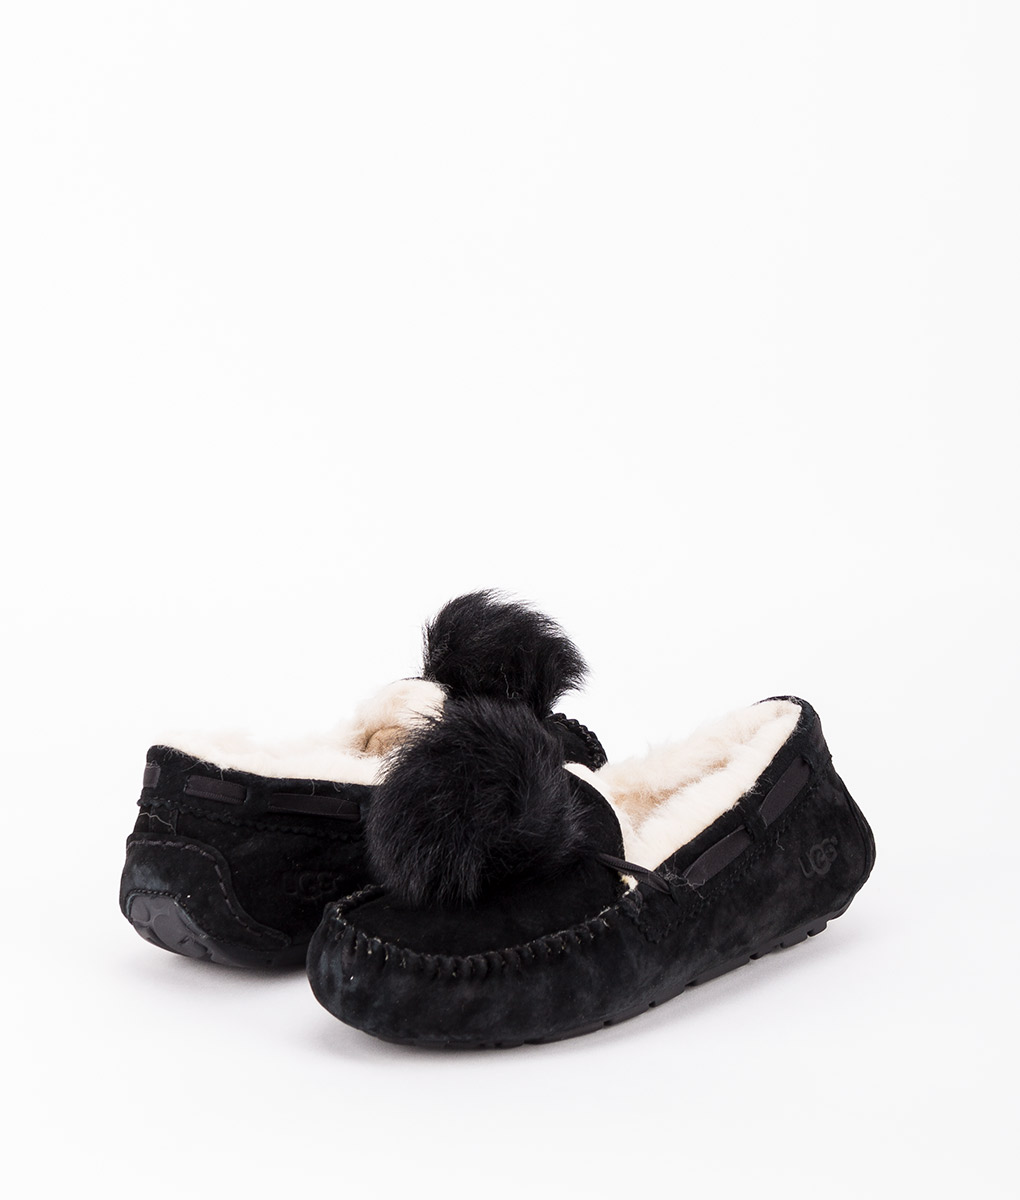 UGG Women Slippers 1019015 DAKOTA POM POM, Black 169.99 1